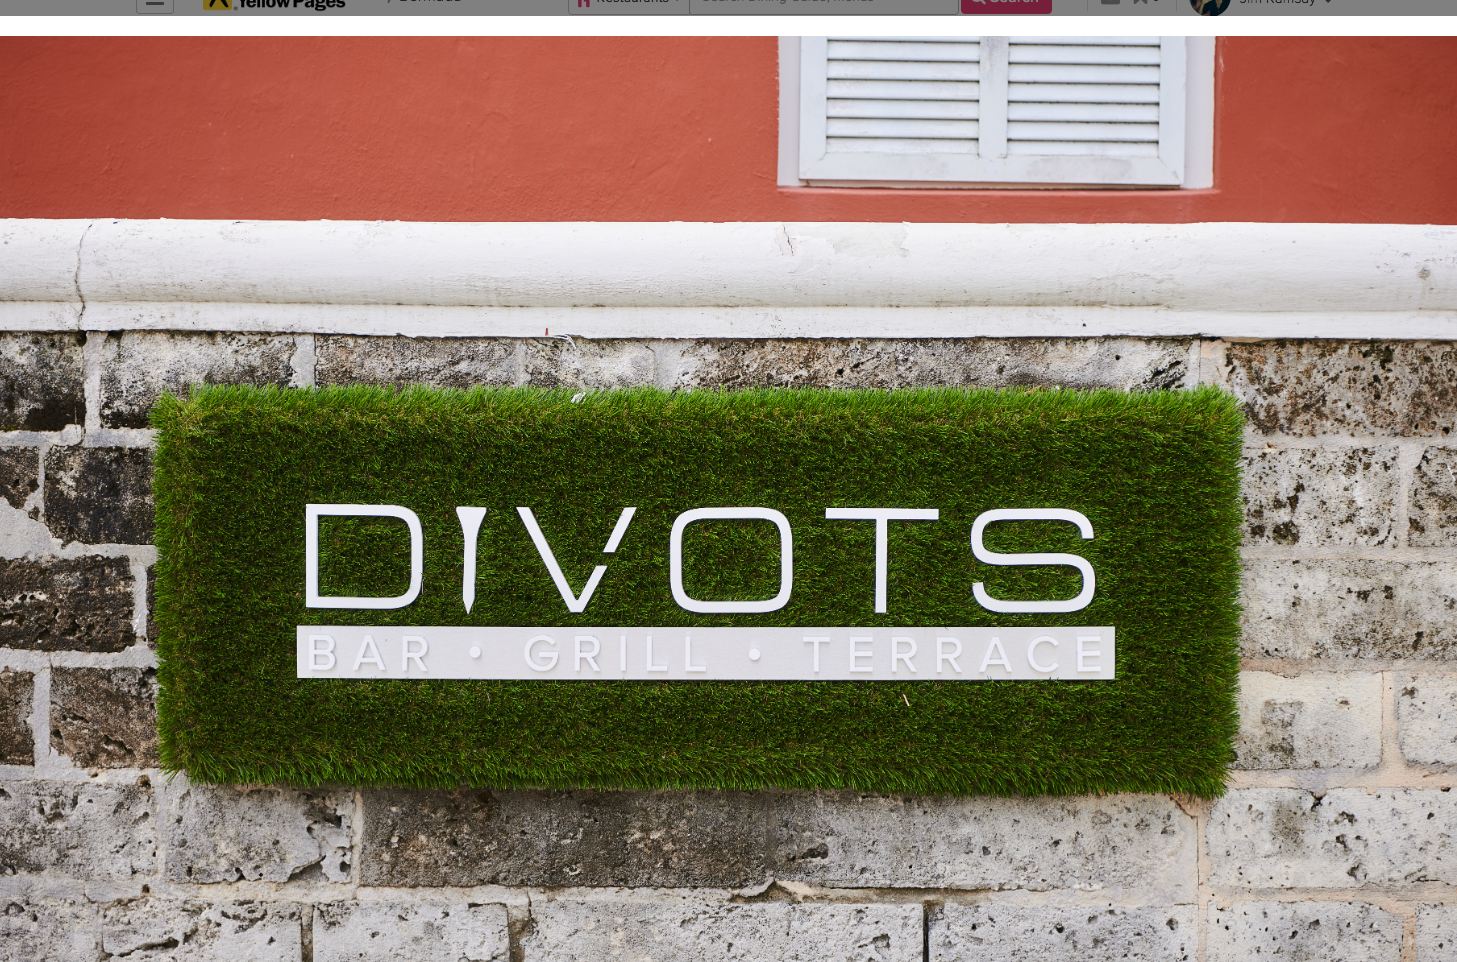 Divots Bar, Grill and Terrace